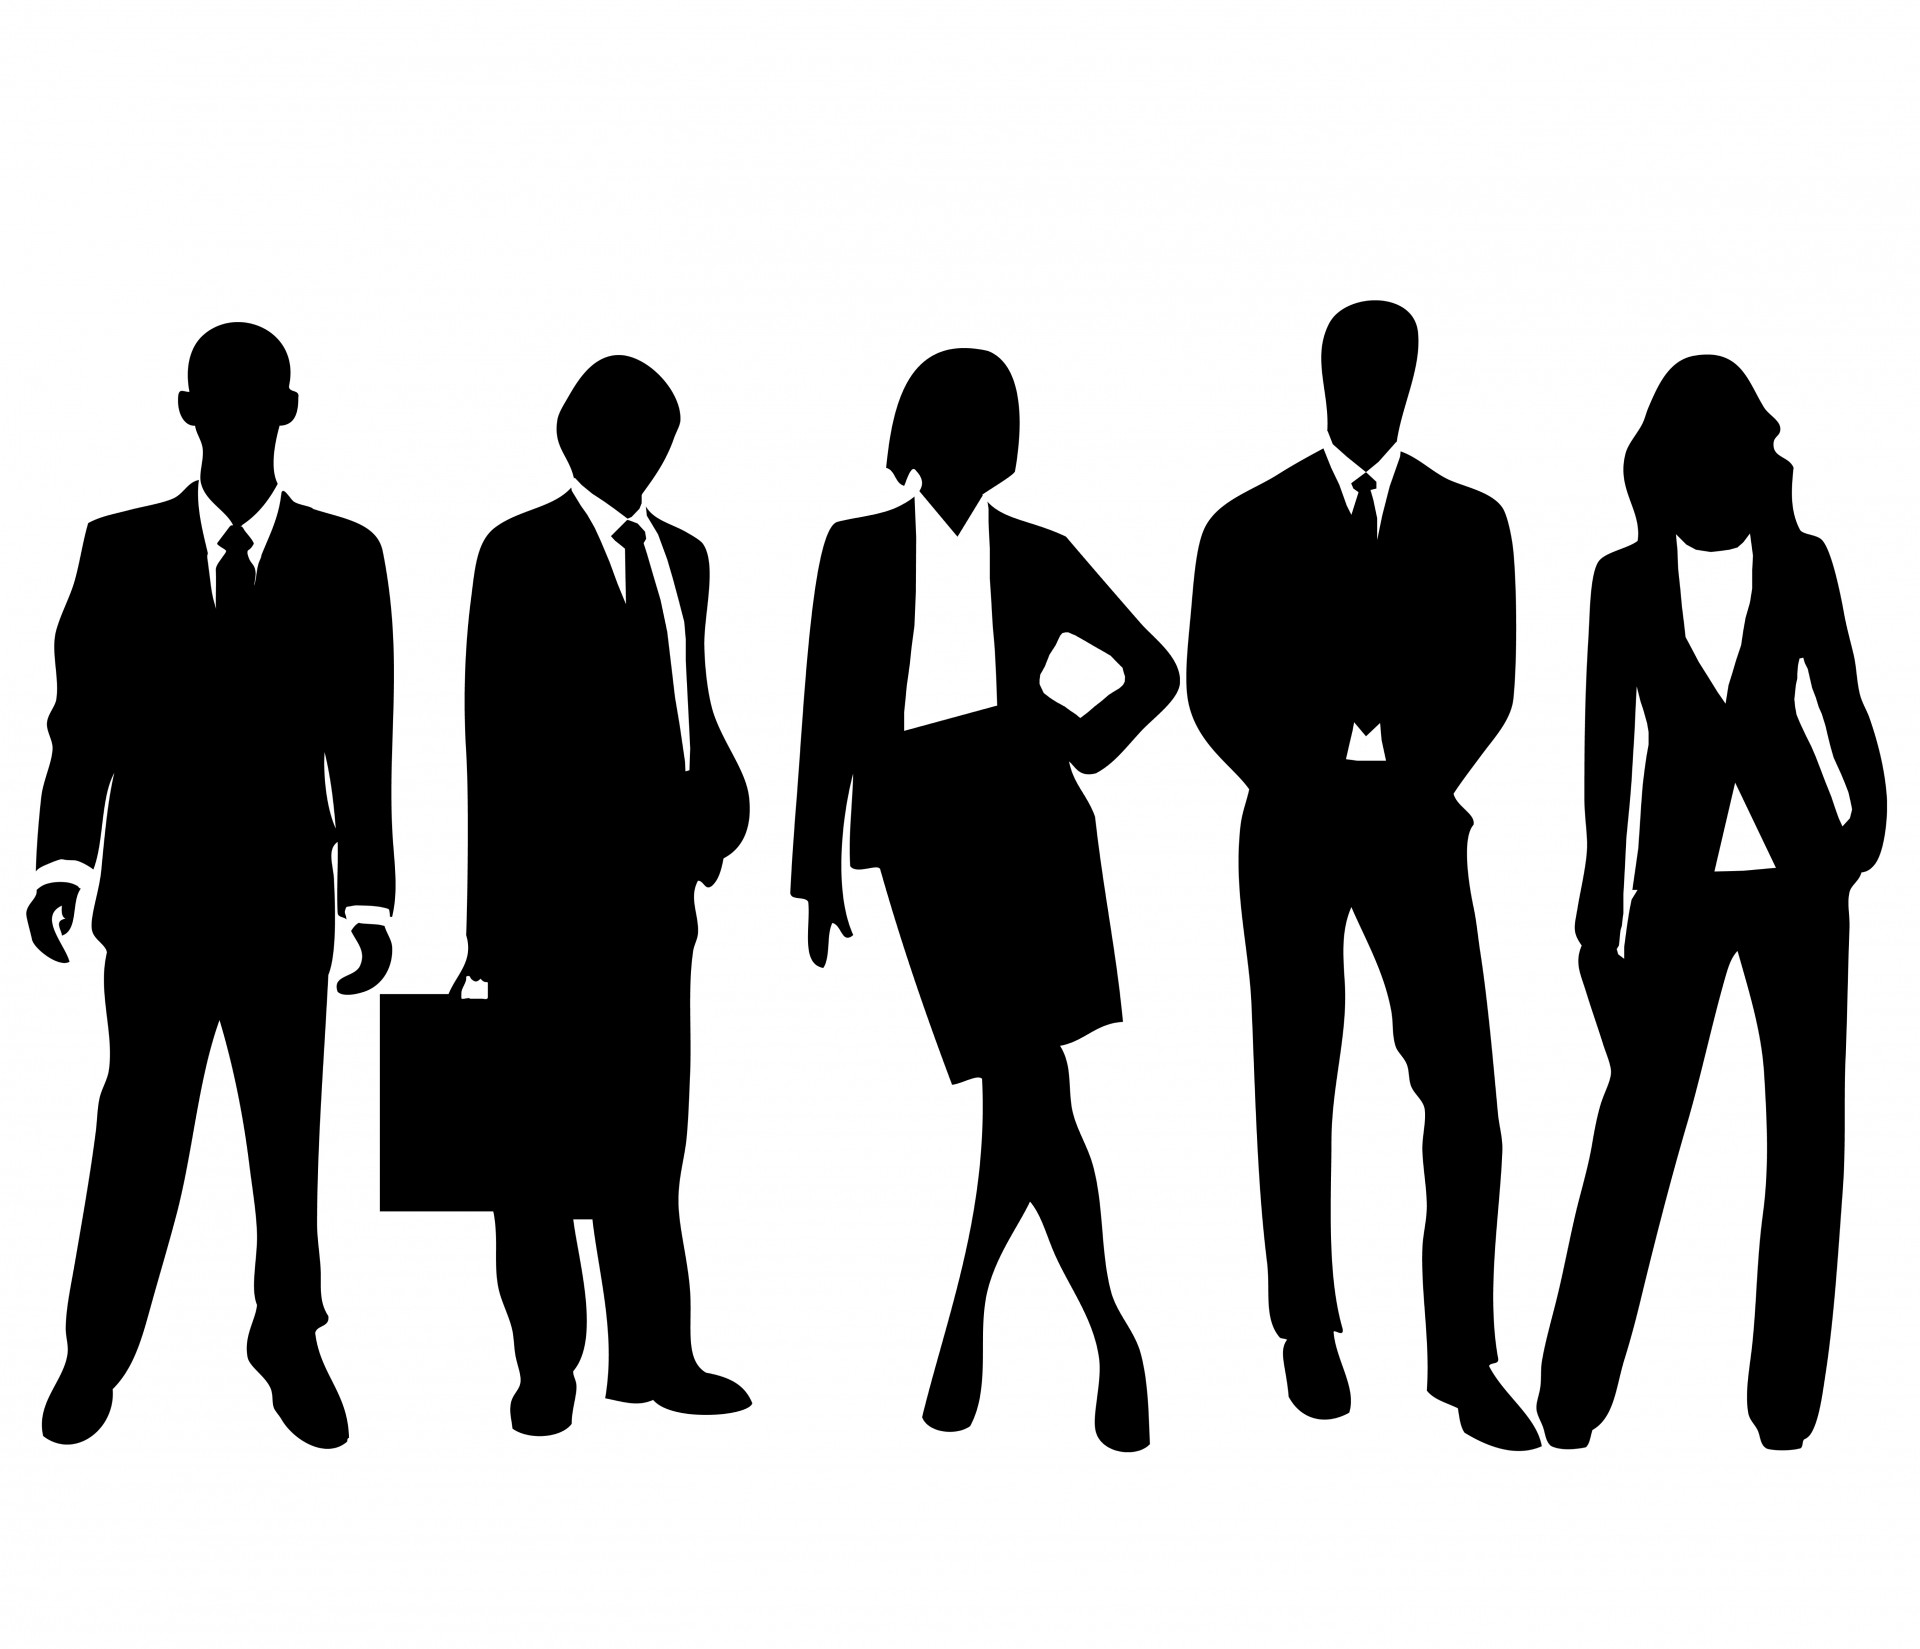 People of color clipart black and white.